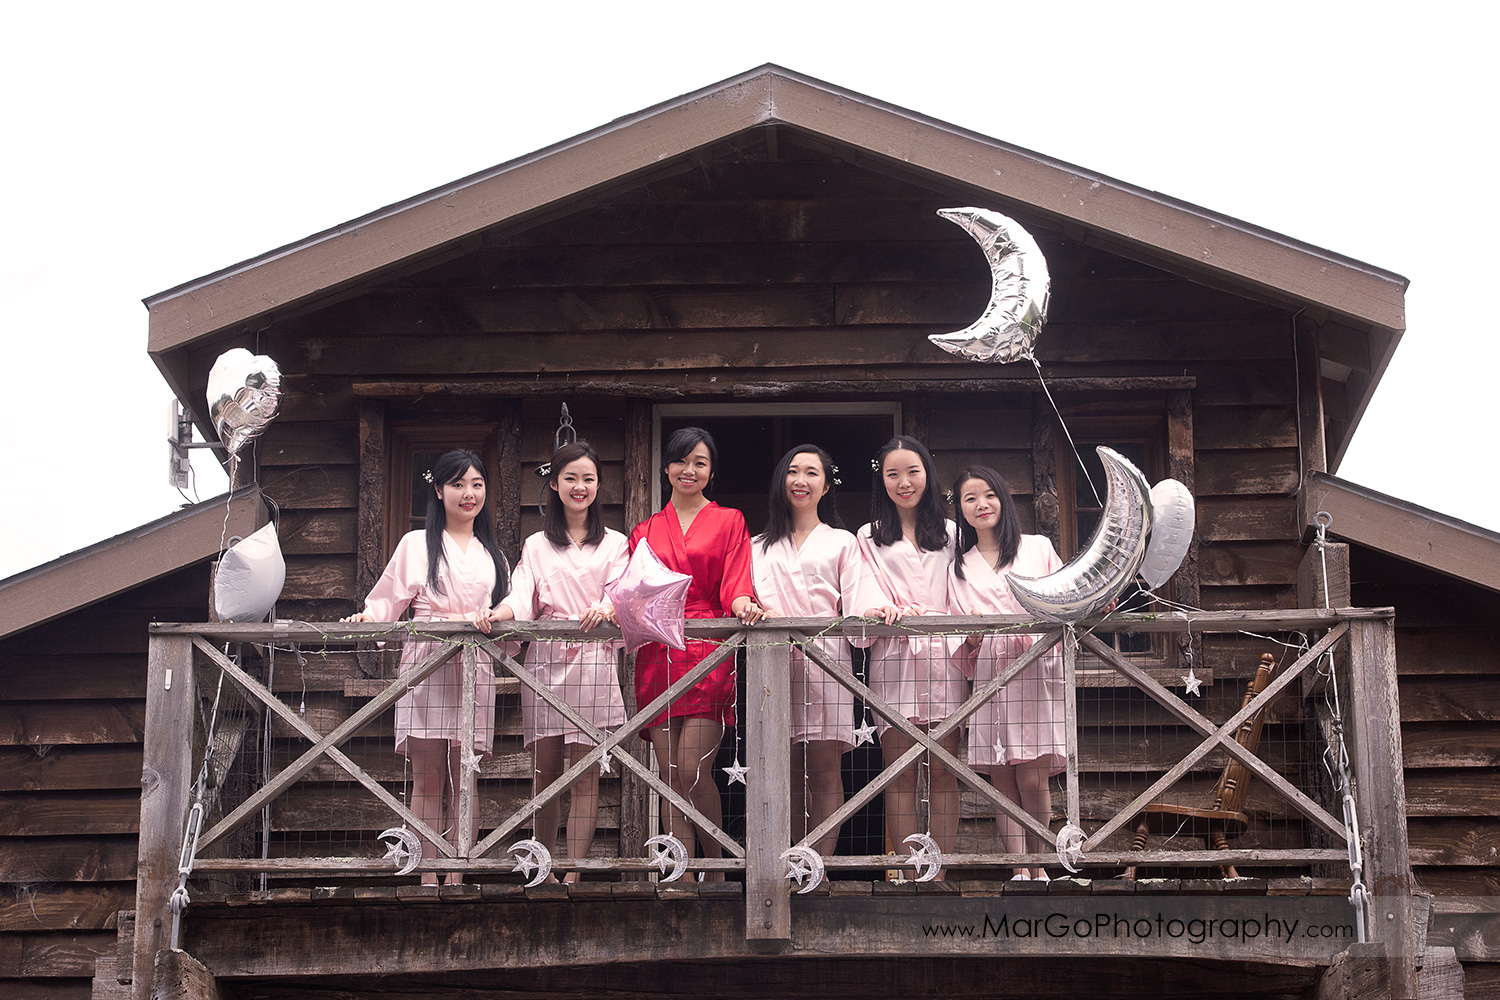 bride in red robe and bridesmaids in pink robes on the balcony at Long Branch Saloon & Farms in Half Moon Bay